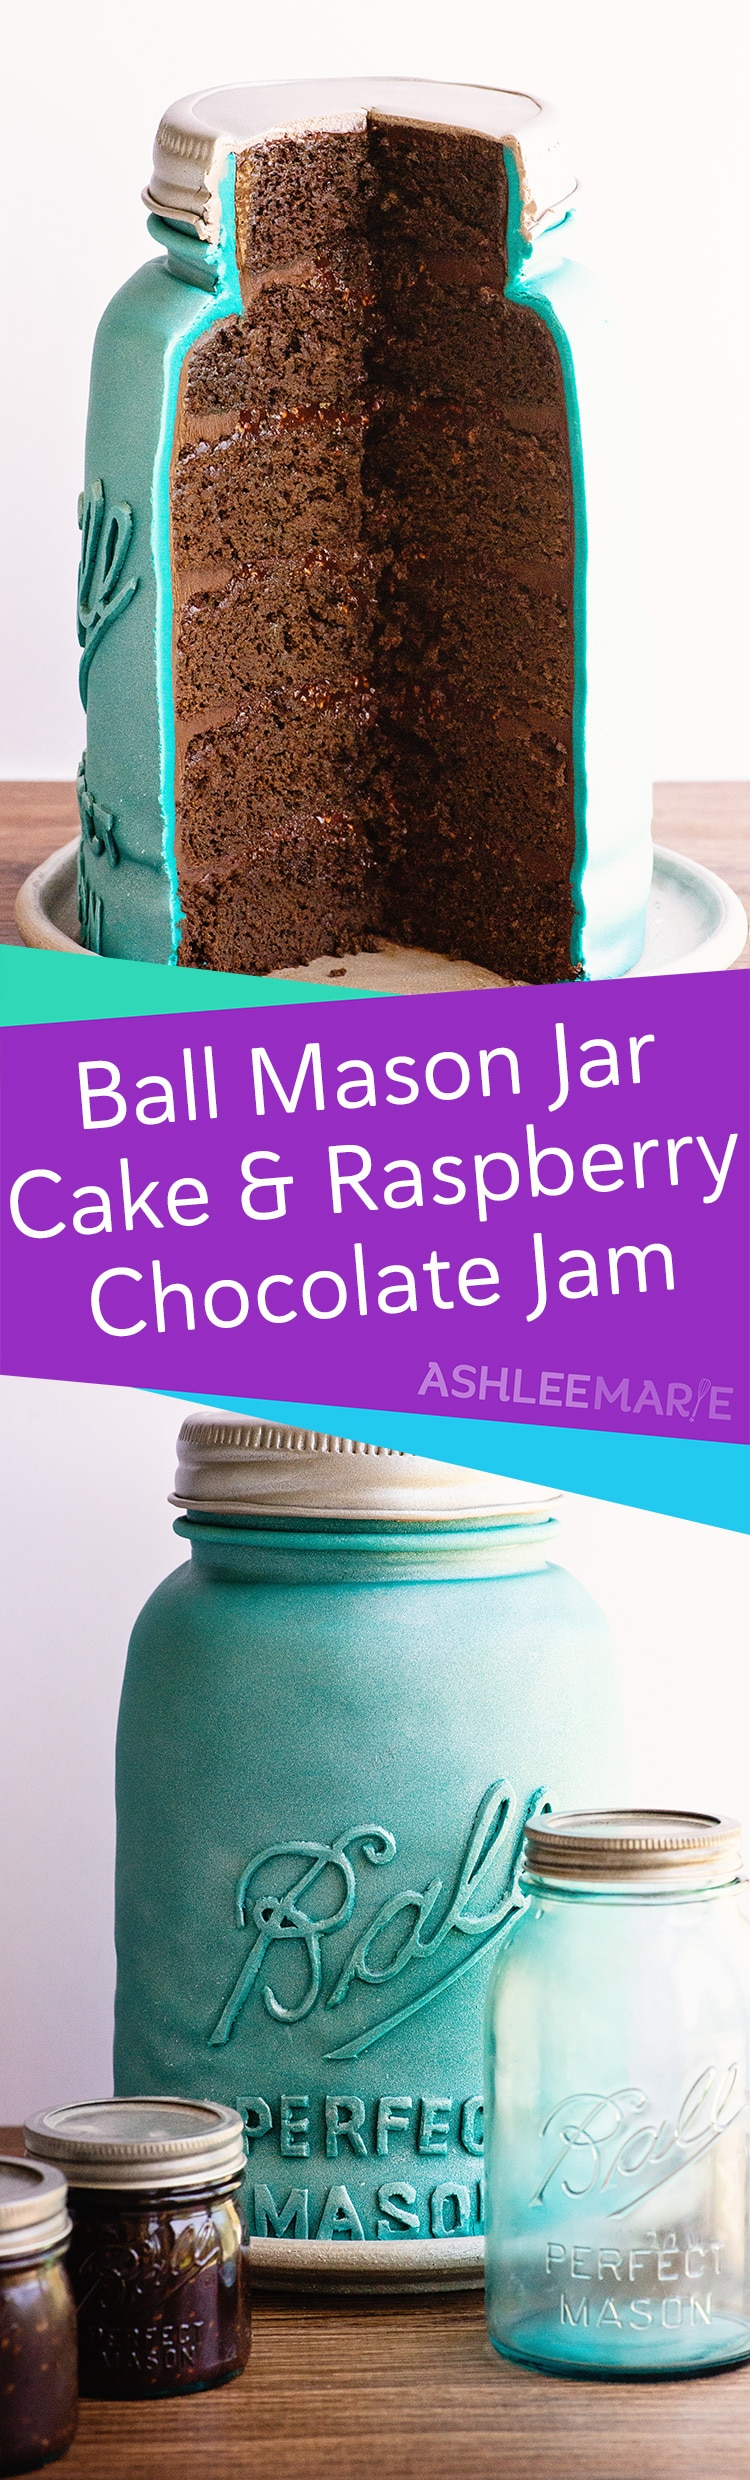 ball mason jar cake with chocolate raspberry jam recipe and video